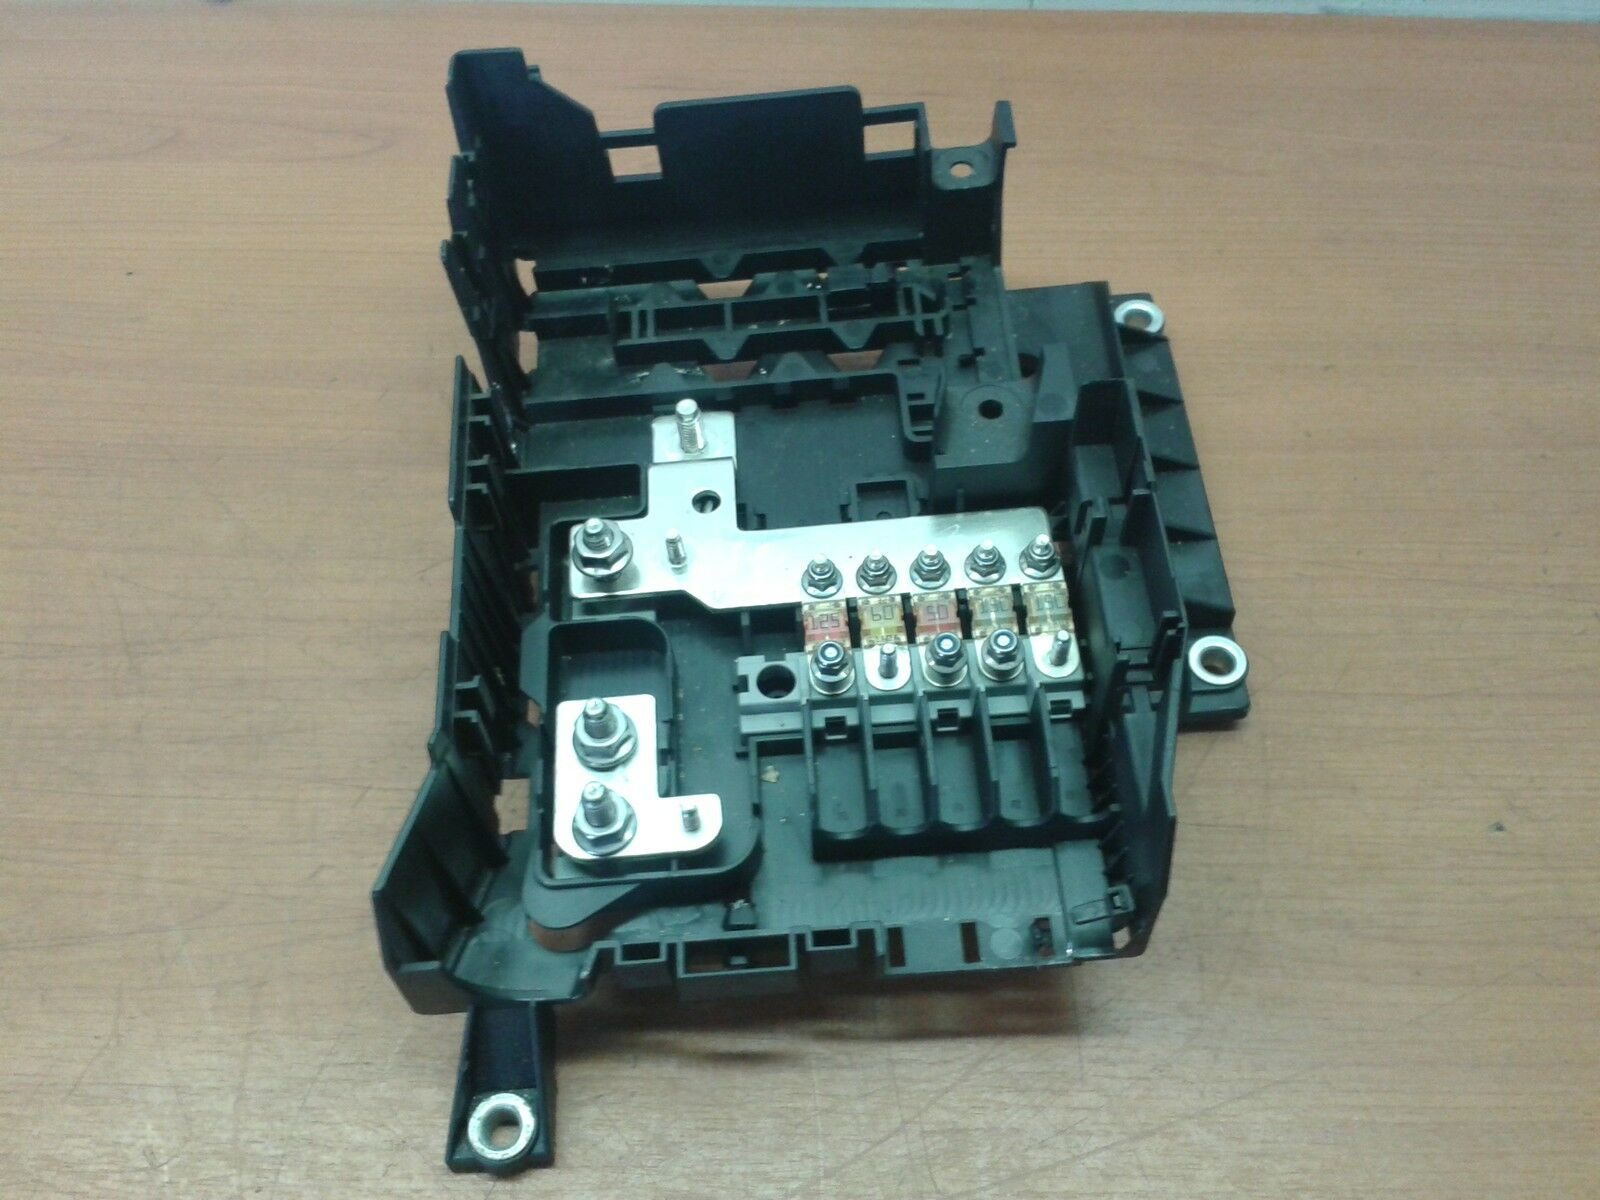 Genuine Audi Q7 4l Fuse Box Engine Compartment 7l0937548c Vw Touareg Location 1 Of 1only Available See More